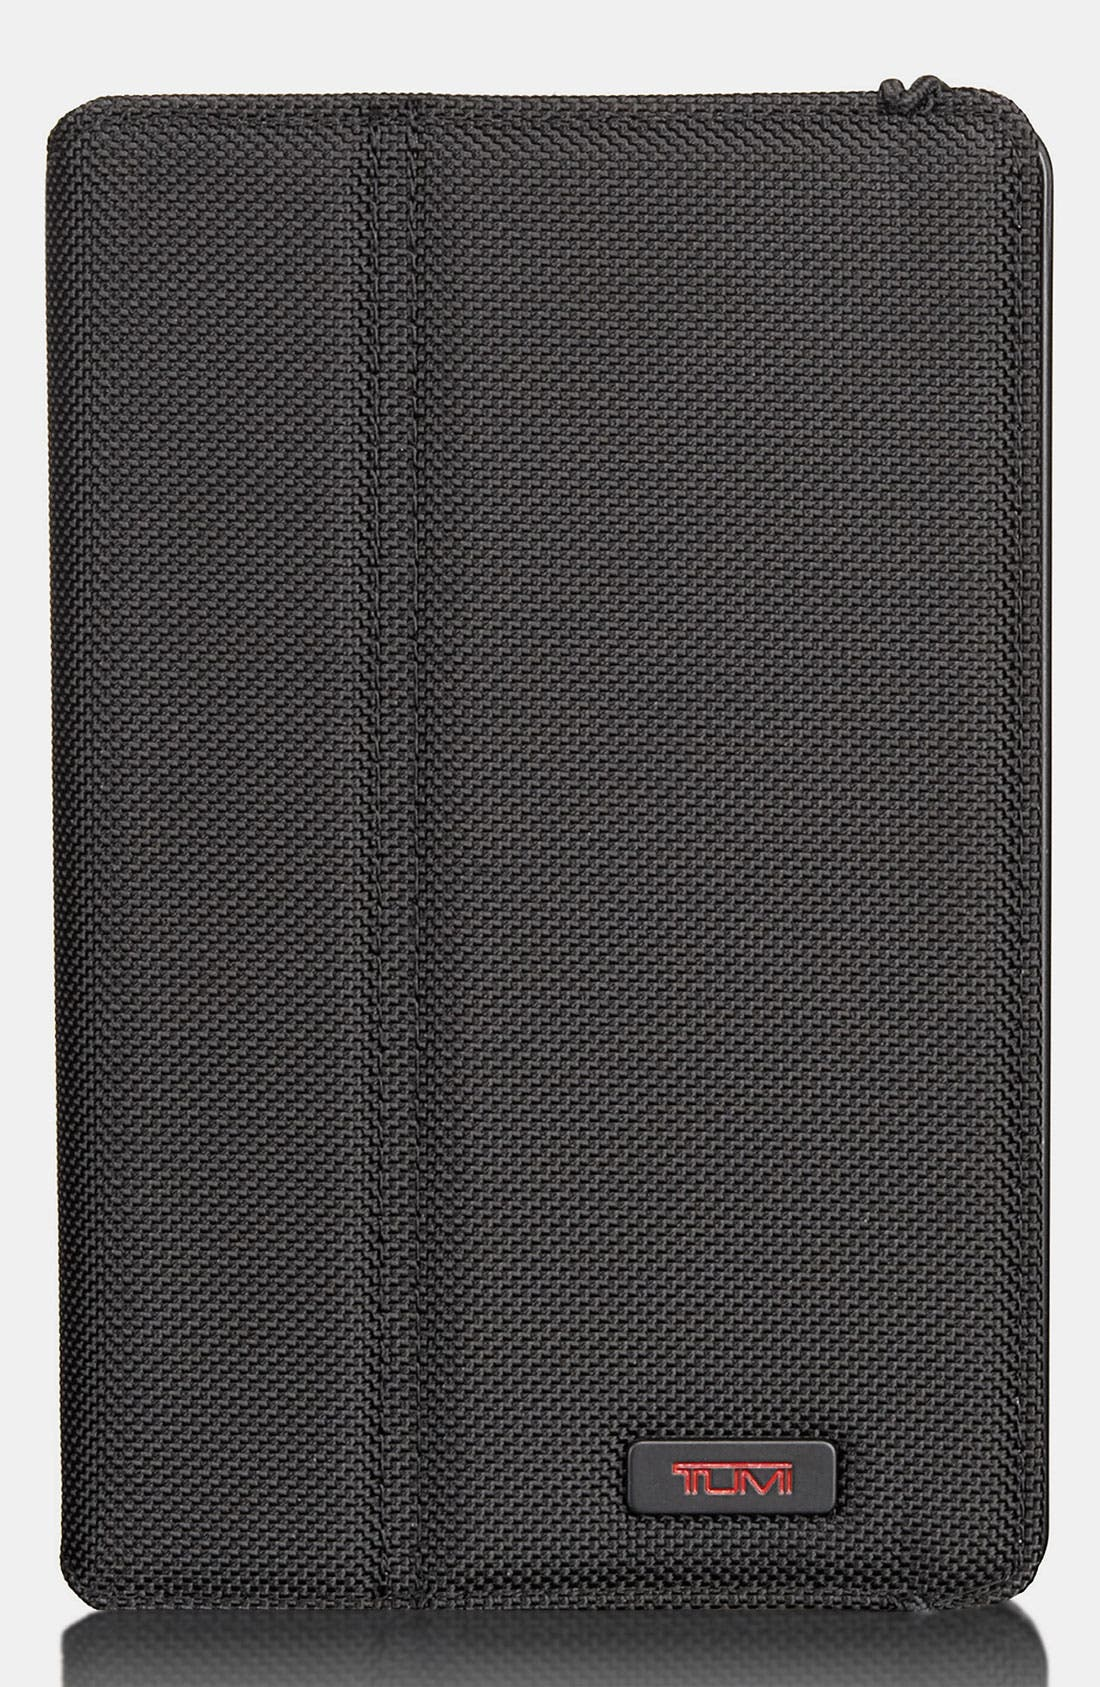 Main Image - Tumi Ballistic Kindle Fire Case